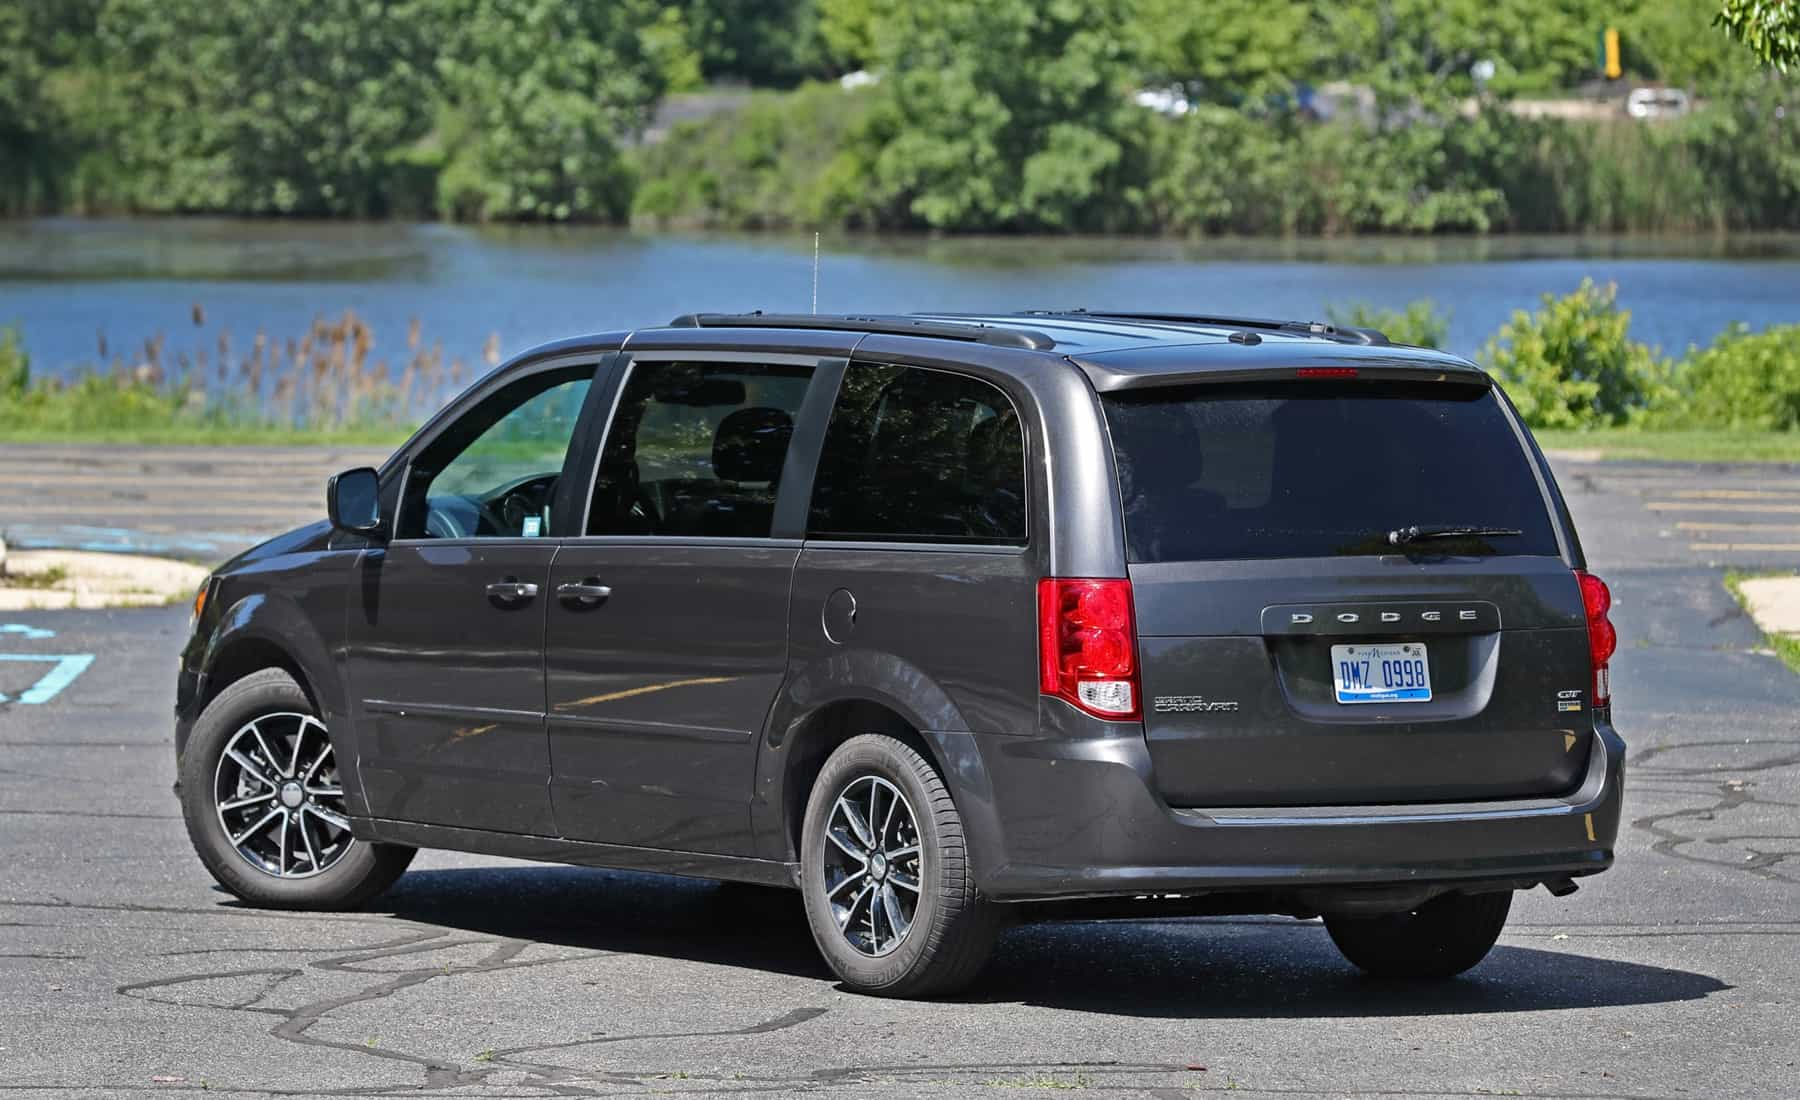 2017 Dodge Grand Caravan Exterior Rear And Side (View 43 of 47)